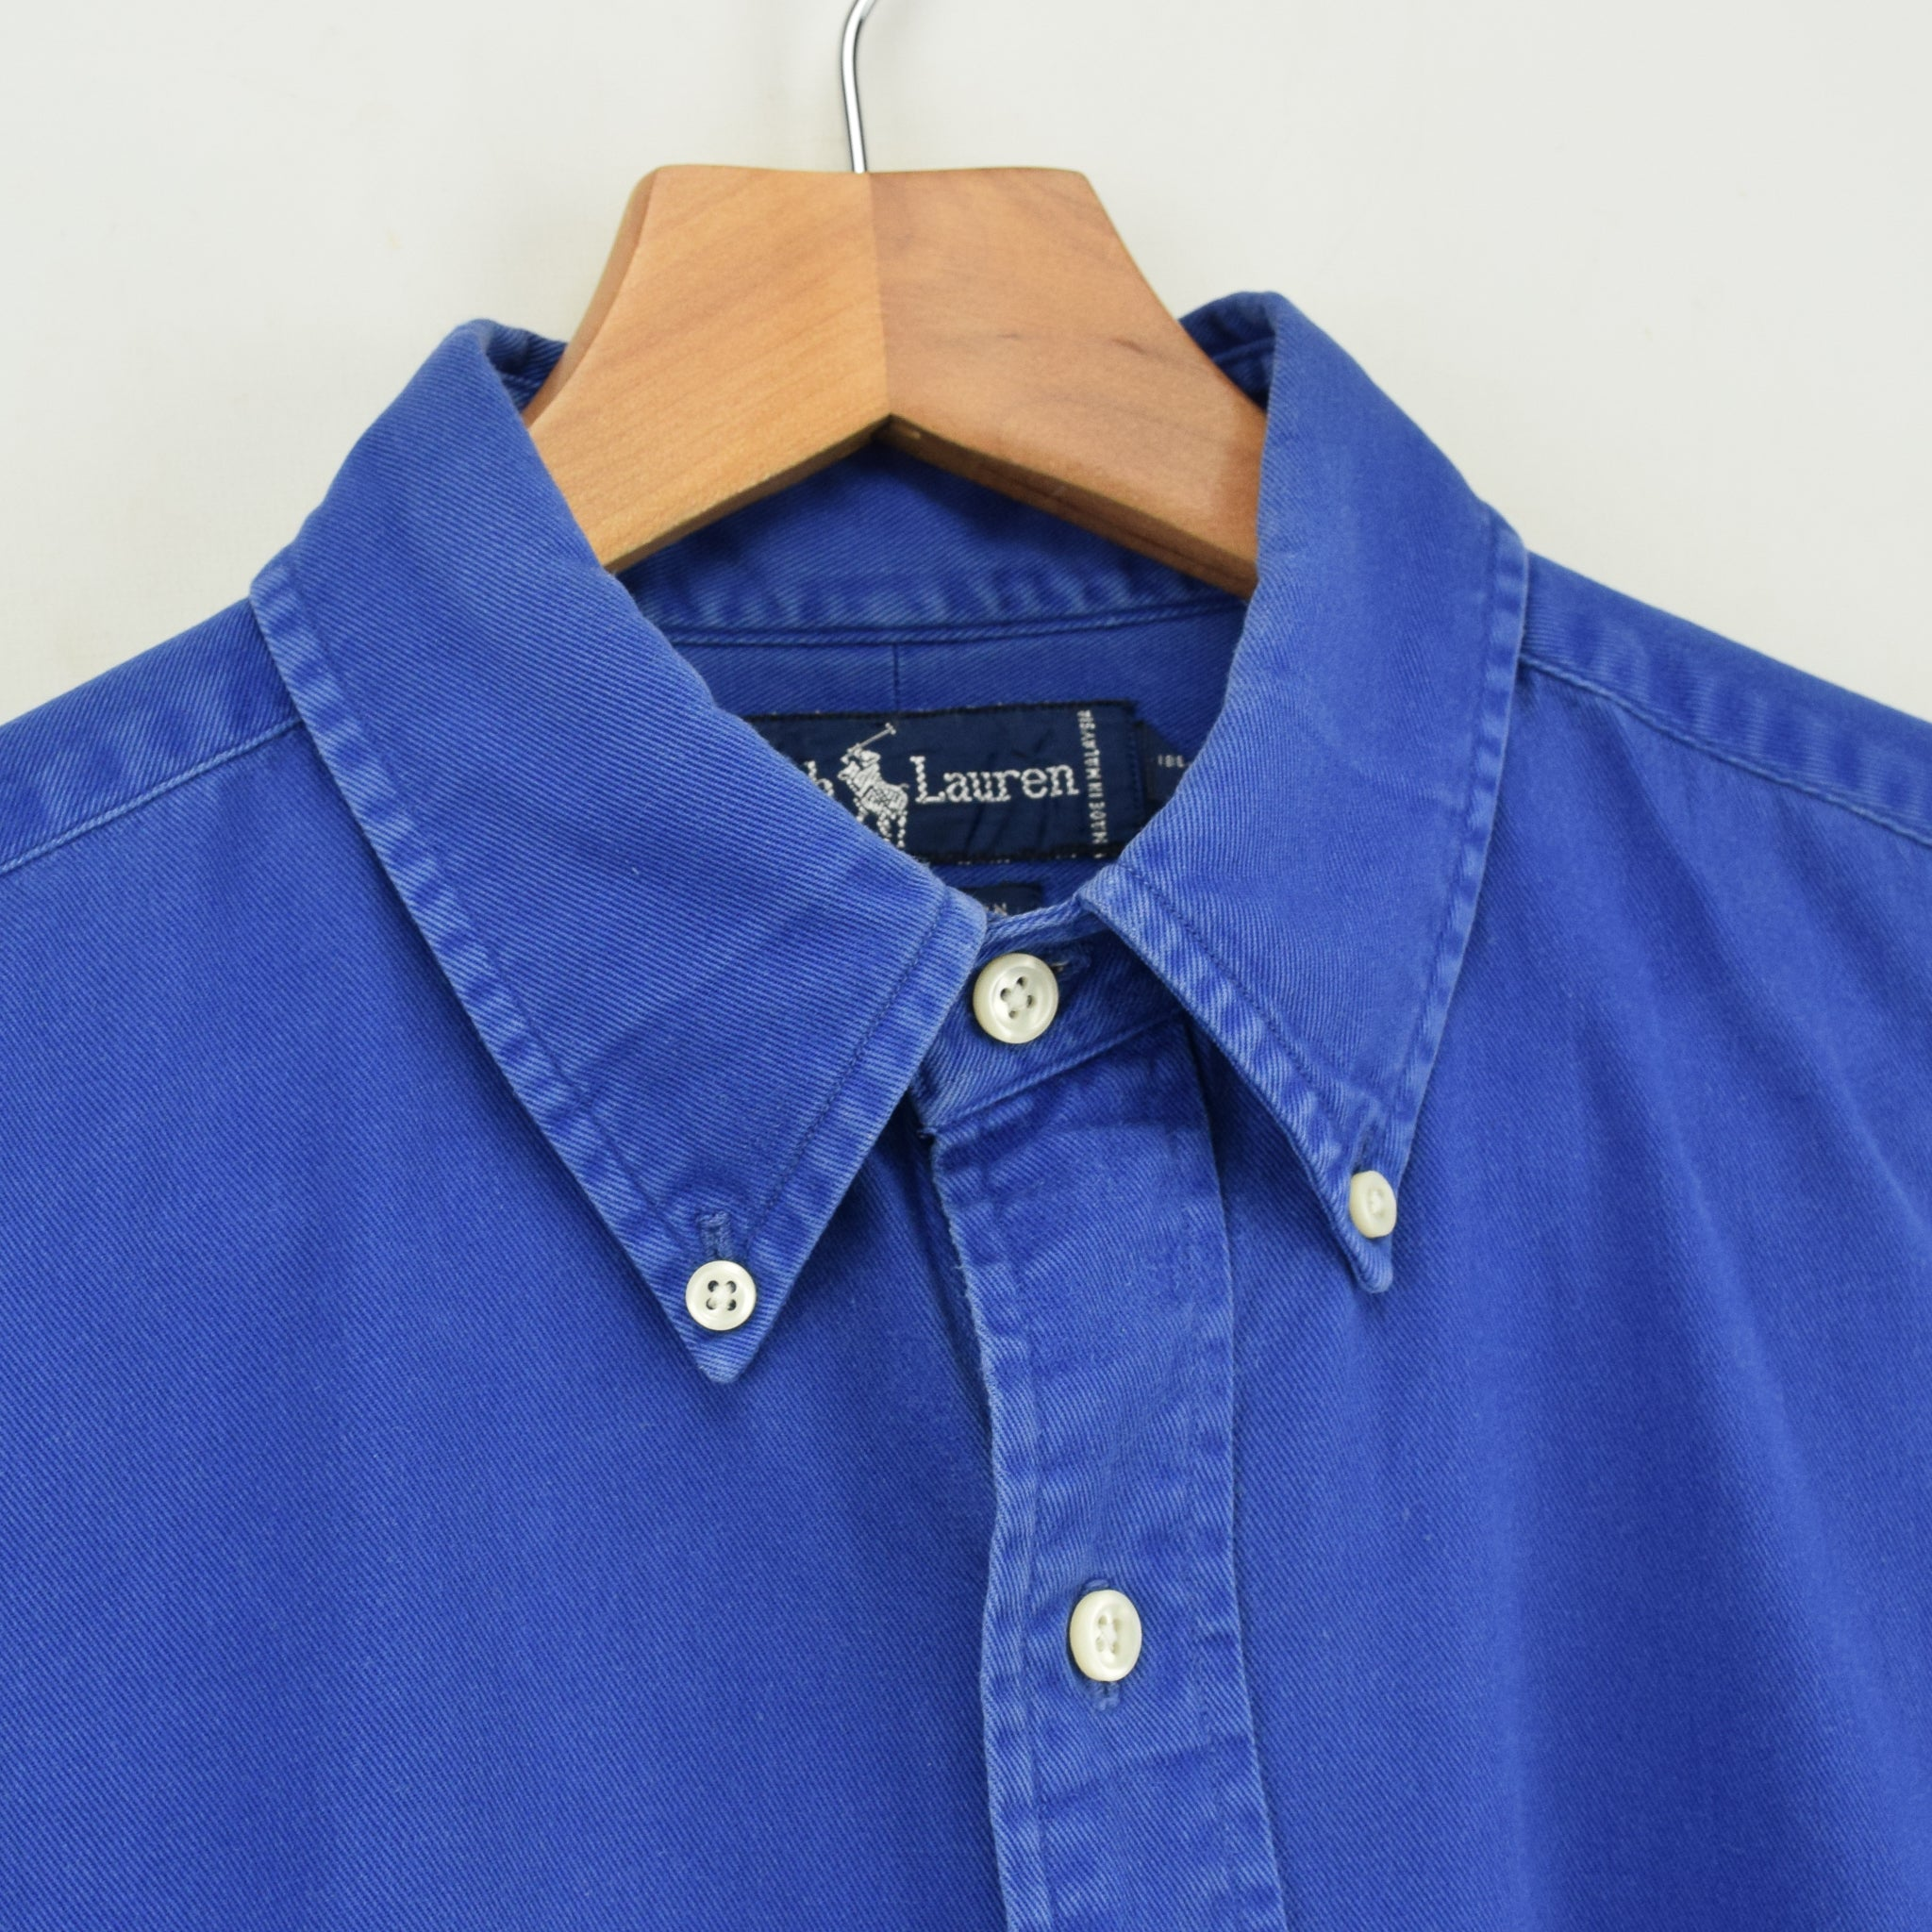 Vintage 80s Ralph Lauren Polo Blue Long Sleeve Cotton Shirt L collar